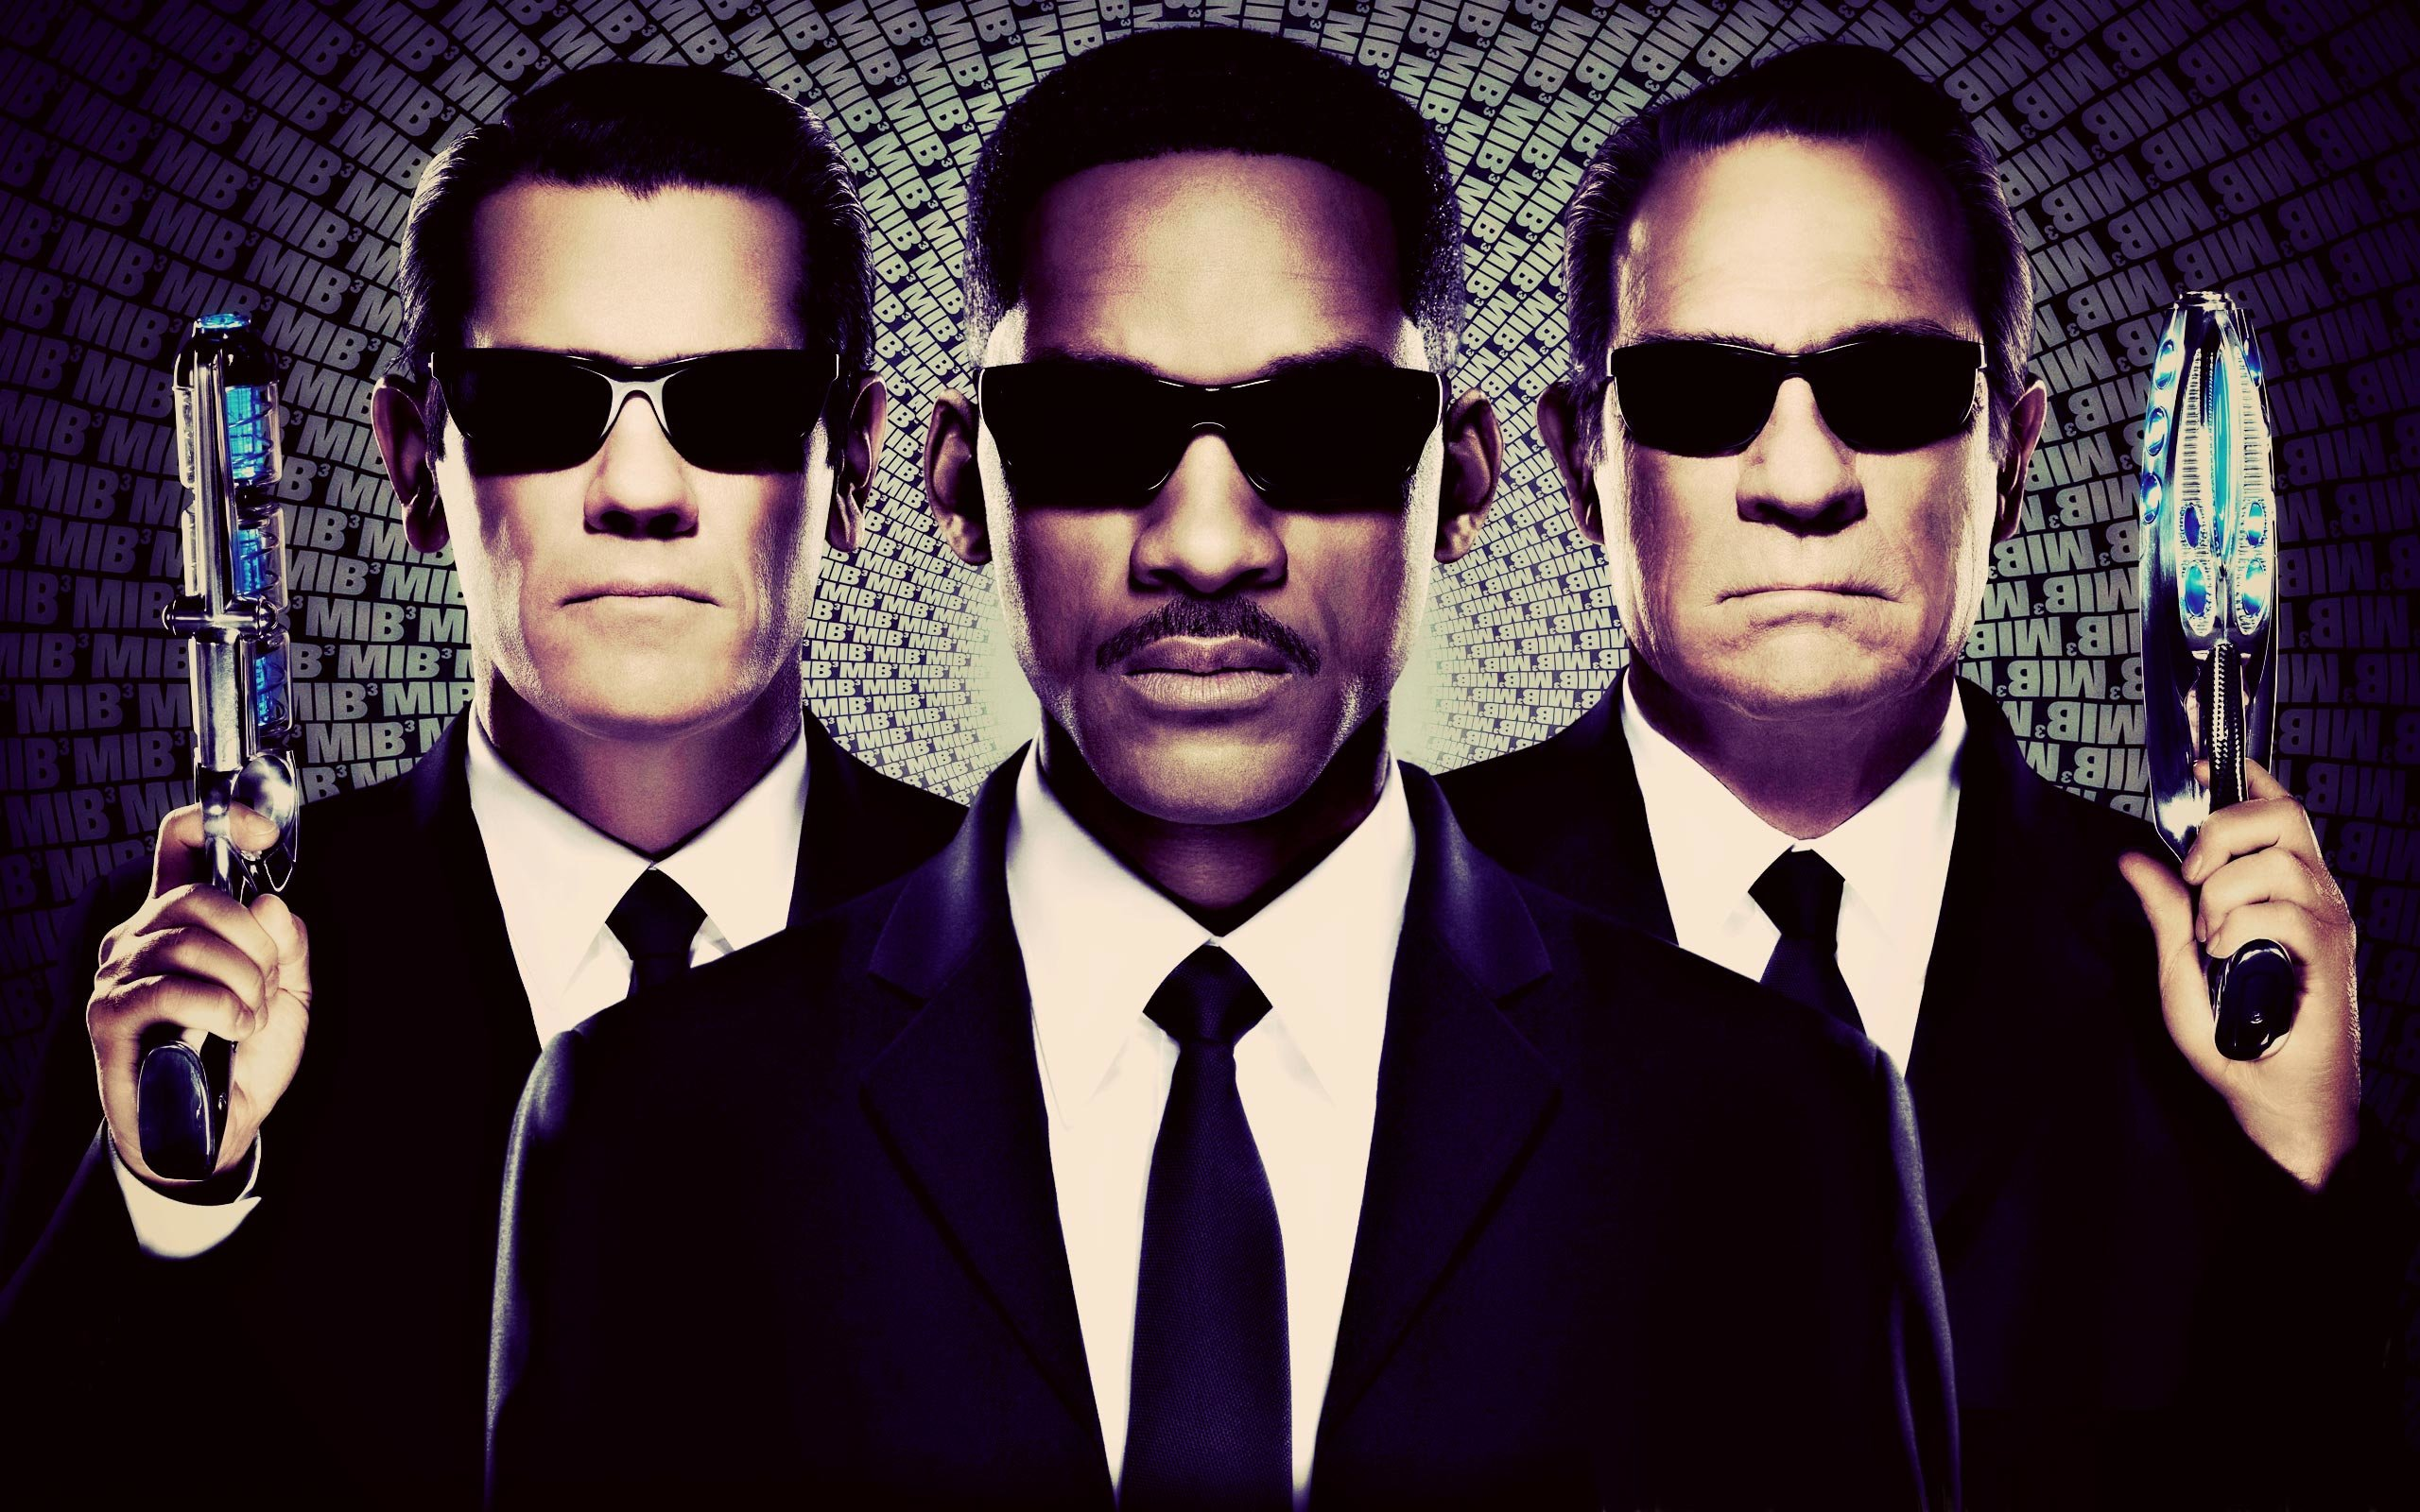 Best Men In Black 3 wallpaper ID:246206 for High Resolution hd 2560x1600 PC